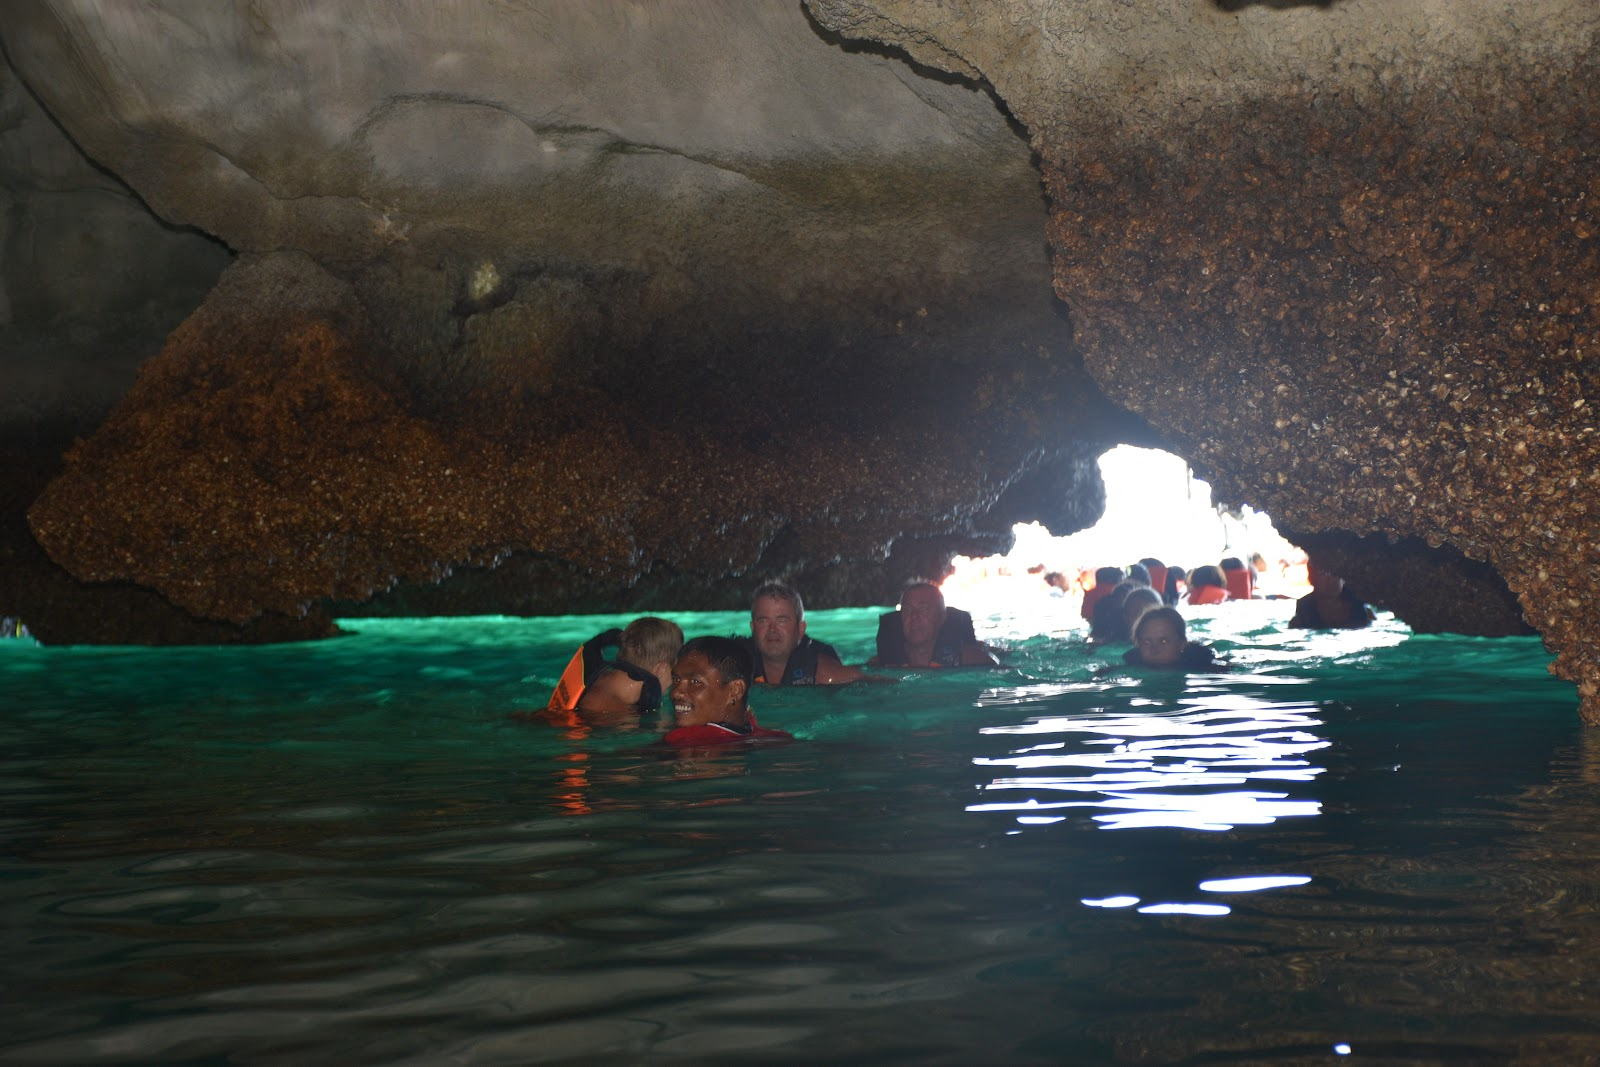 4 Island Snorkel & Kayak Tour to Emerald Cave by Big Boat from Koh Lanta